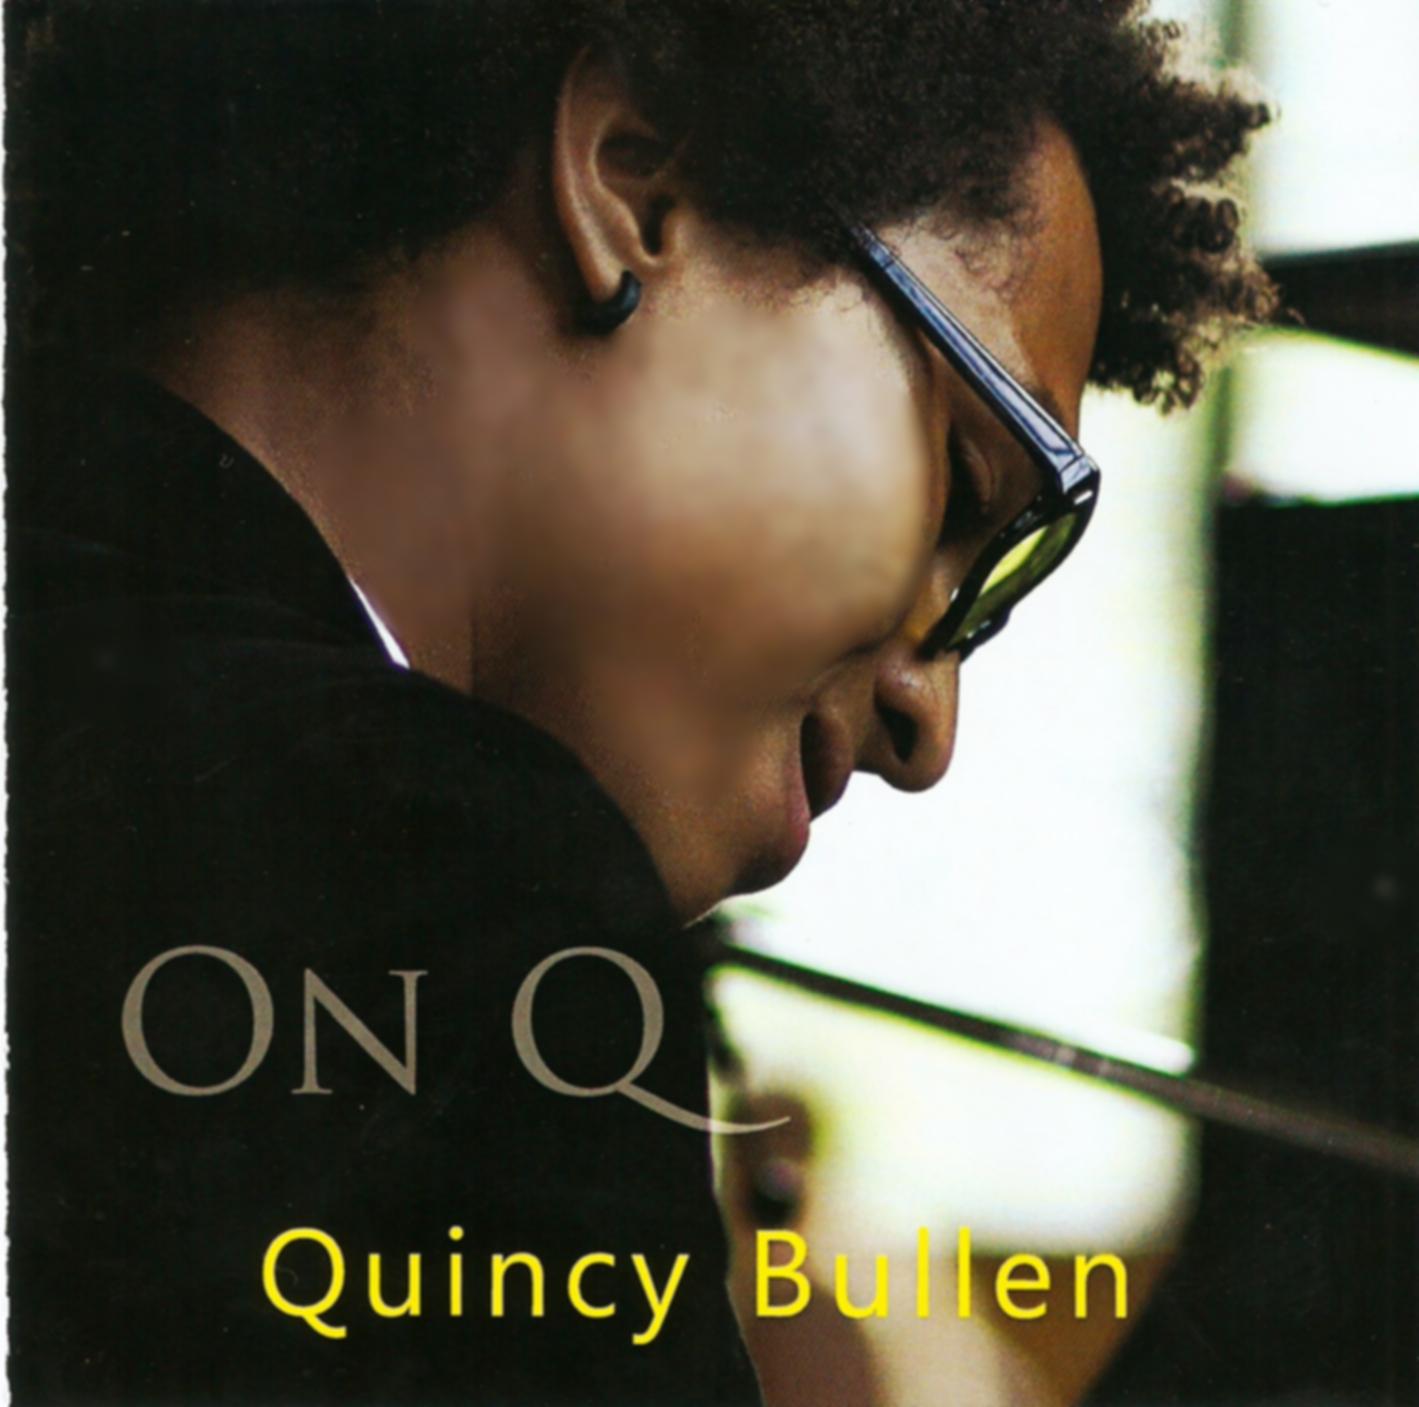 On Q Album 1 2010 copy.jpg